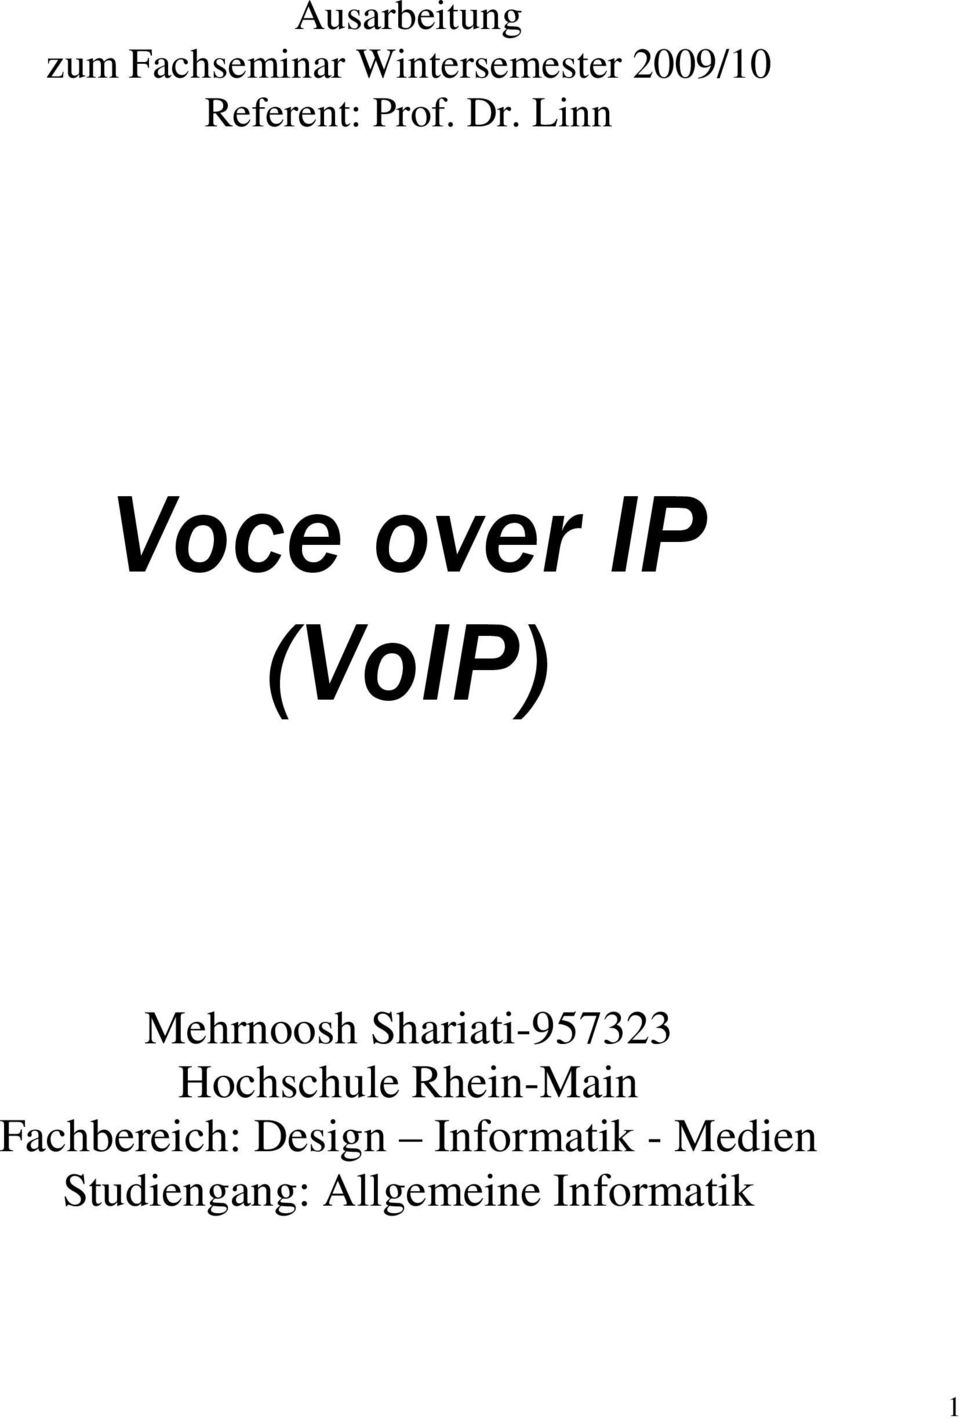 Linn Voce over IP (VoIP) Mehrnoosh Shariati-957323